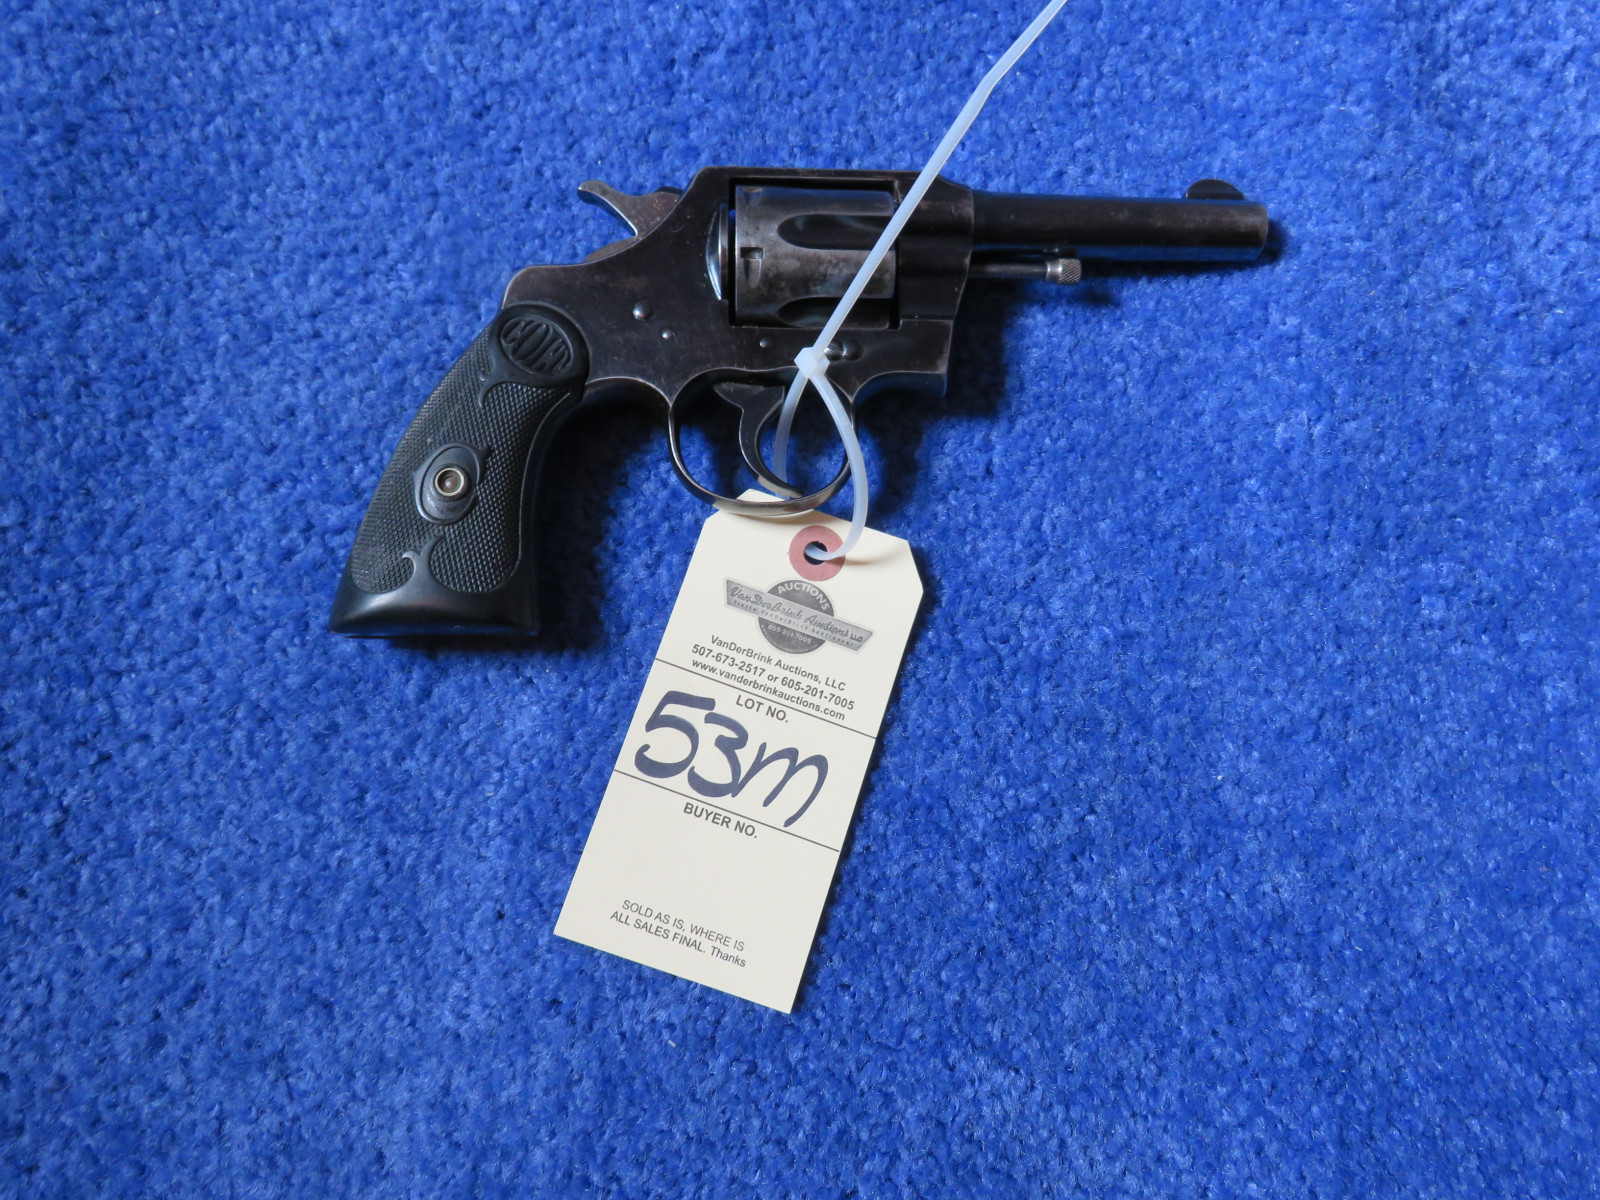 Colt Army Special .32 WCF Handgun - Image 2